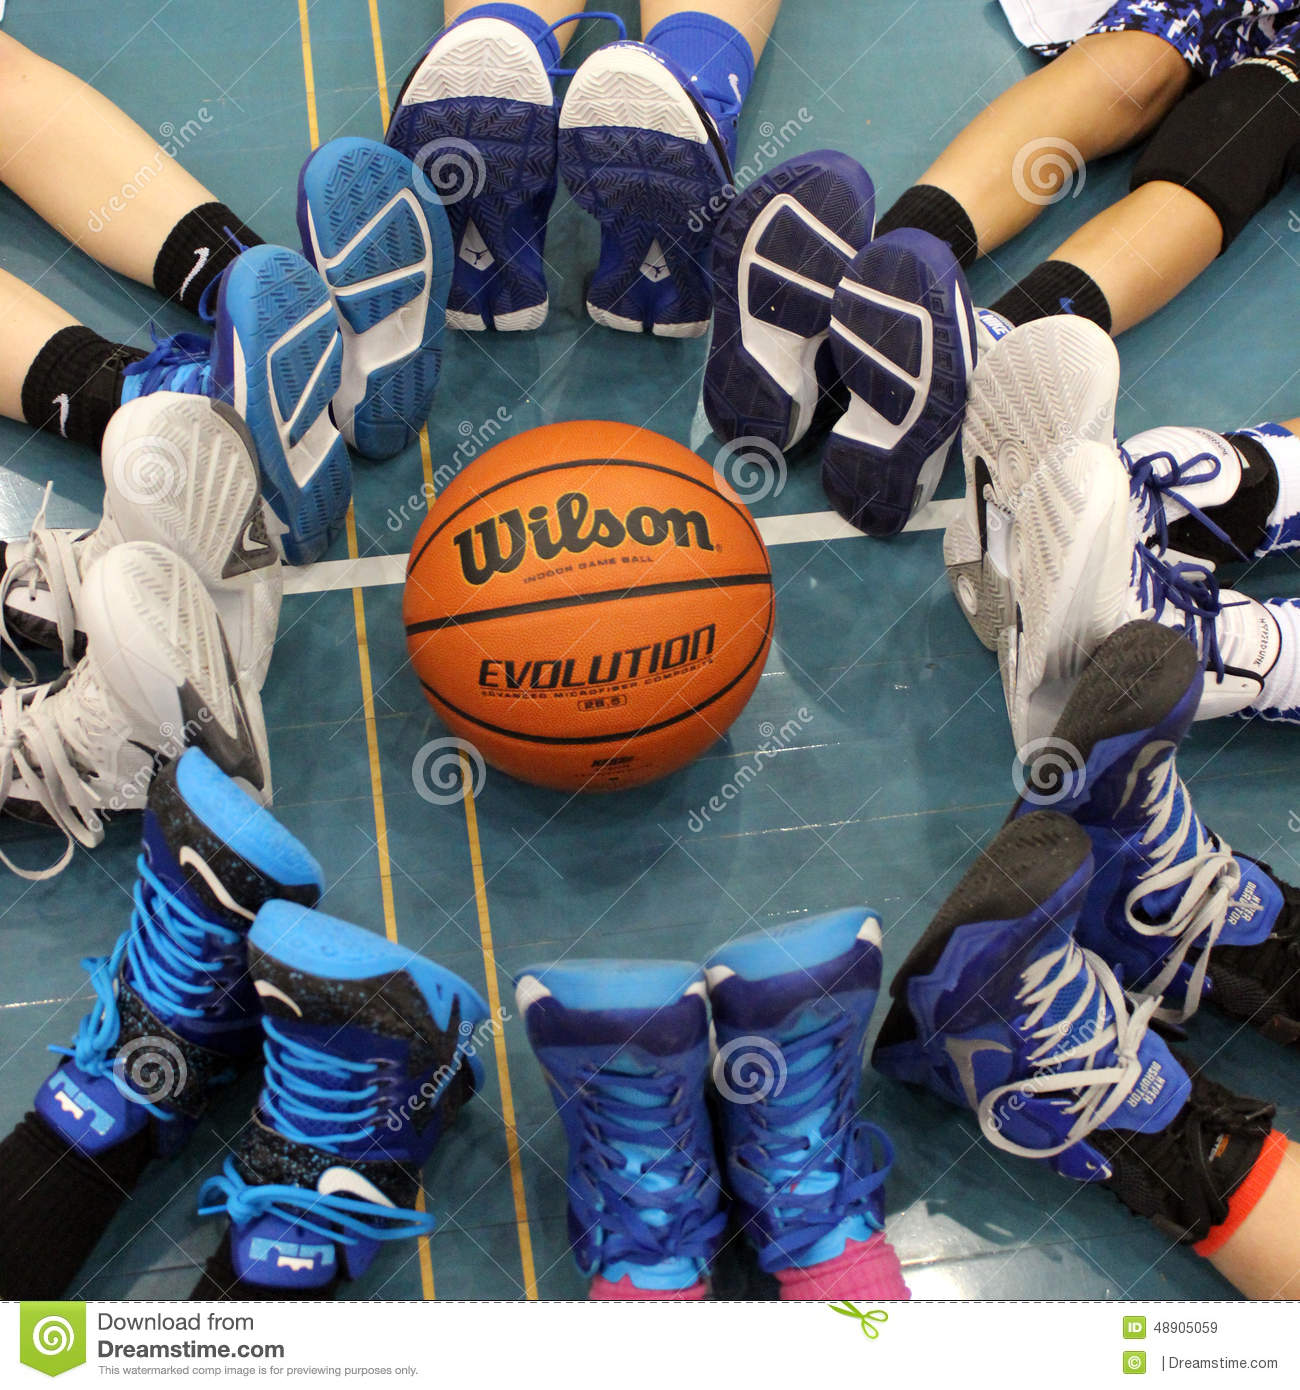 Basketball Shoes Editorial Stock Image - Image: 48905059